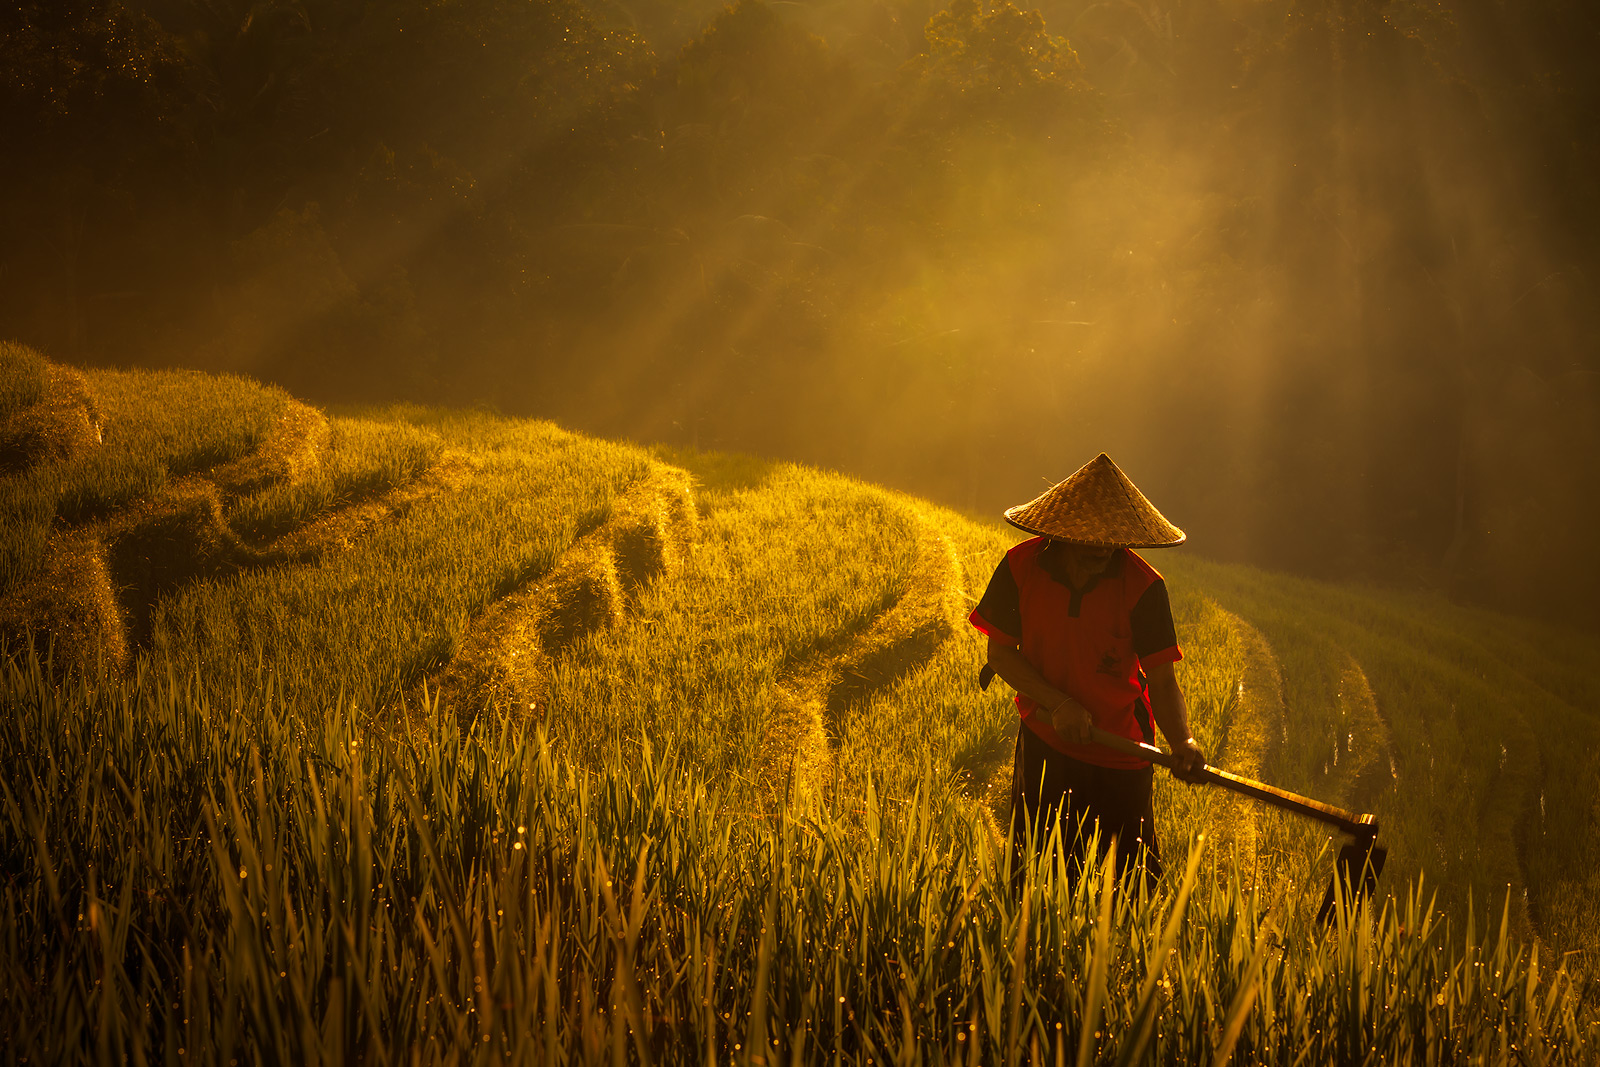 asia,bali,belimbing,east java,farmer,field,indonesia,java,male,man,morning,mountain,old,rice,rice terrace,tabanan, photo